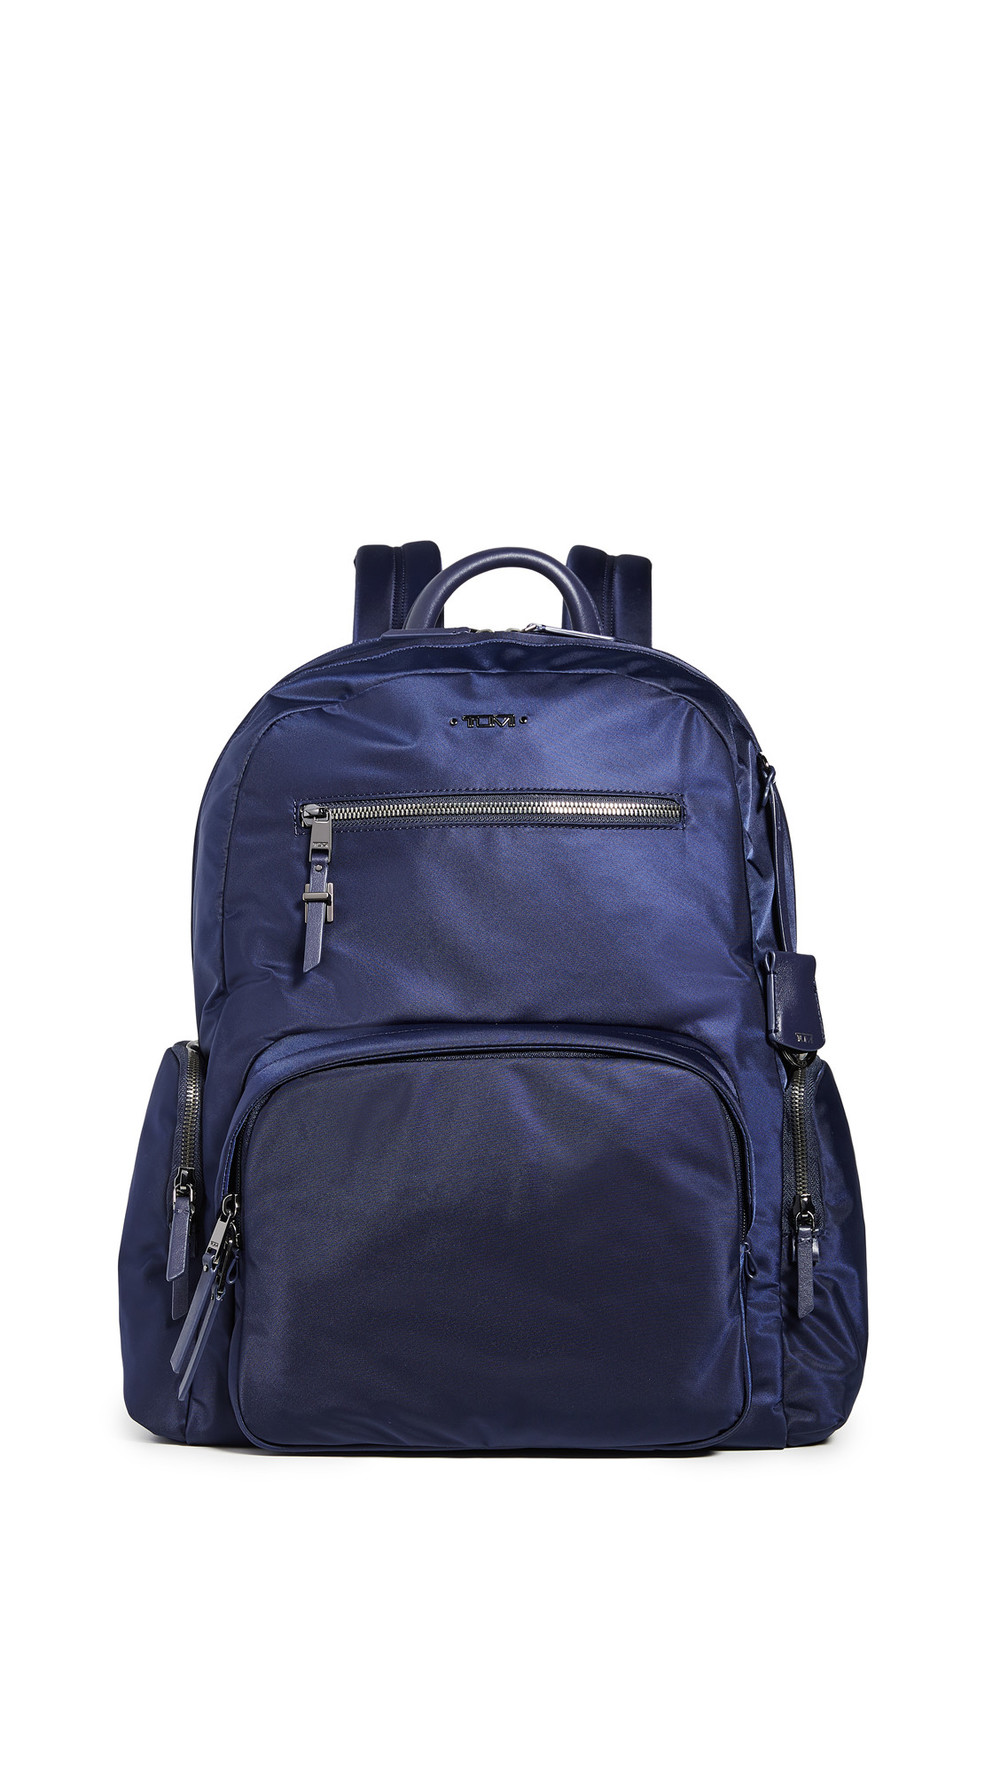 Tumi Carson Backpack in midnight